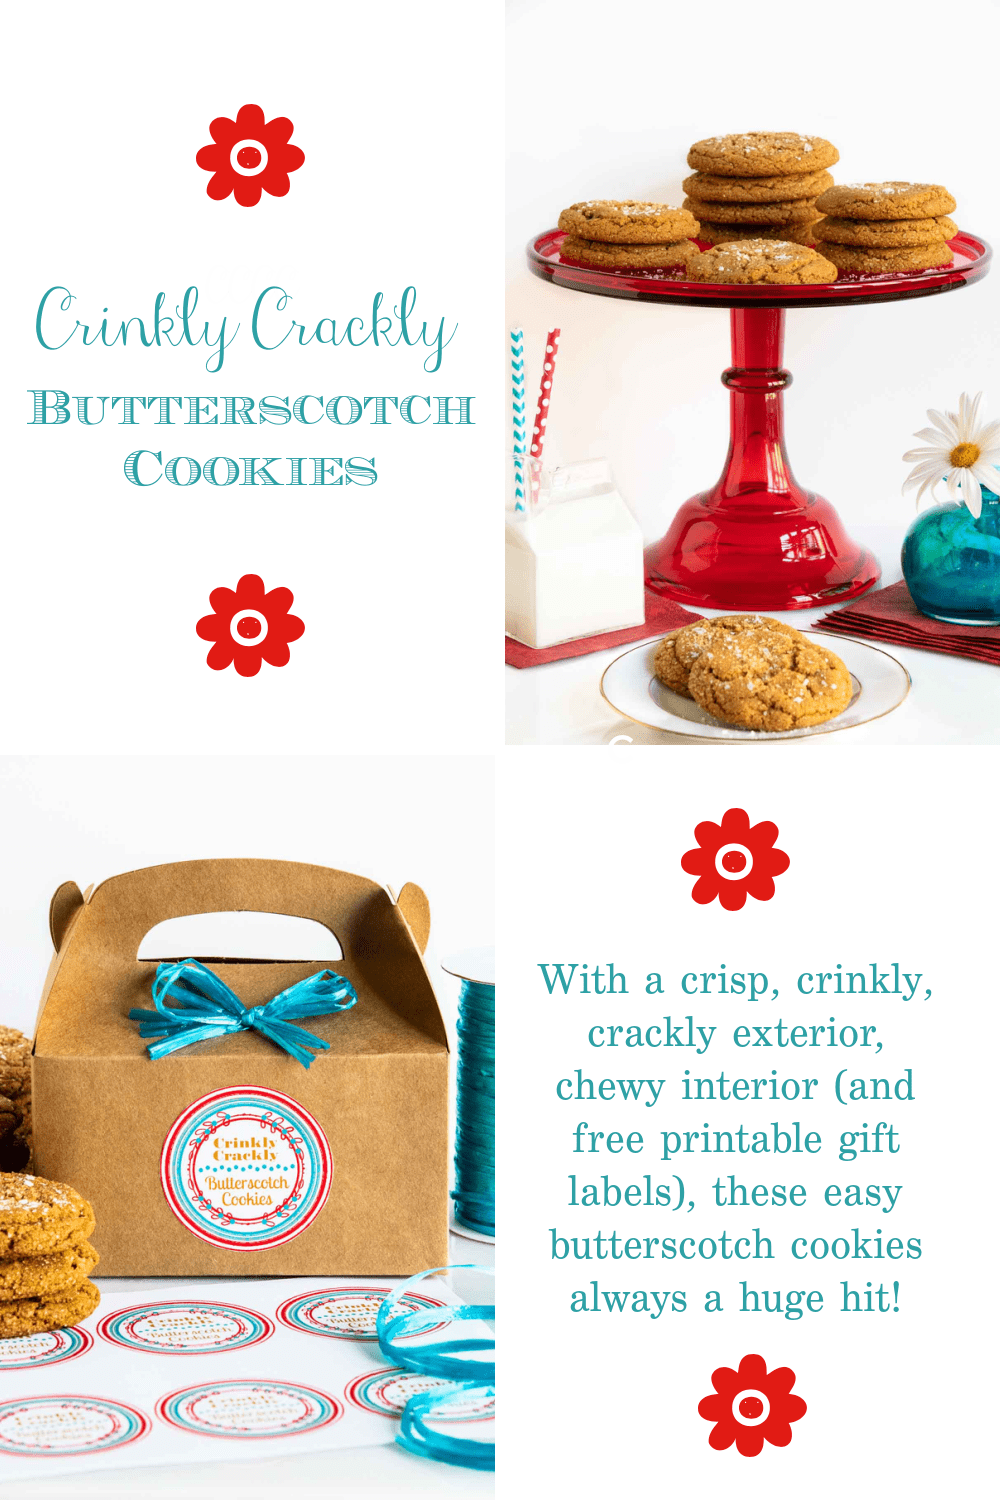 Crinkly Crackly Butterscotch Cookies